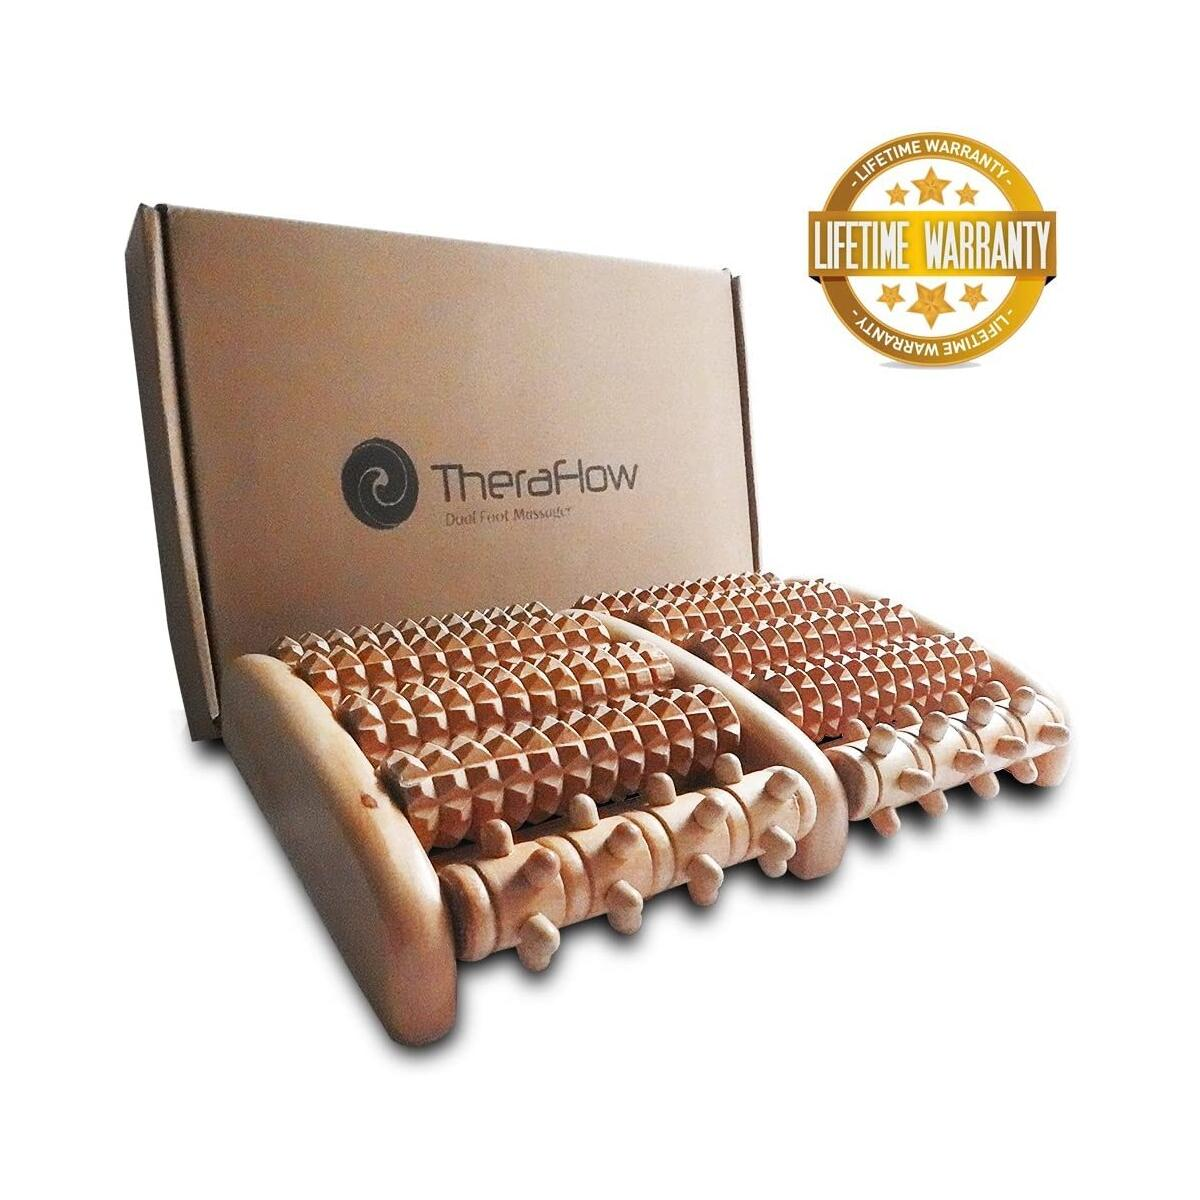 TheraFlow Large Dual Foot Massager. 2020 Updated Version. Relaxation, Foot Pain, Plantar Fasciitis & Stress Relief. Includes Full Laminated Chart & Instructions. New Rubber Grips. Gift Package